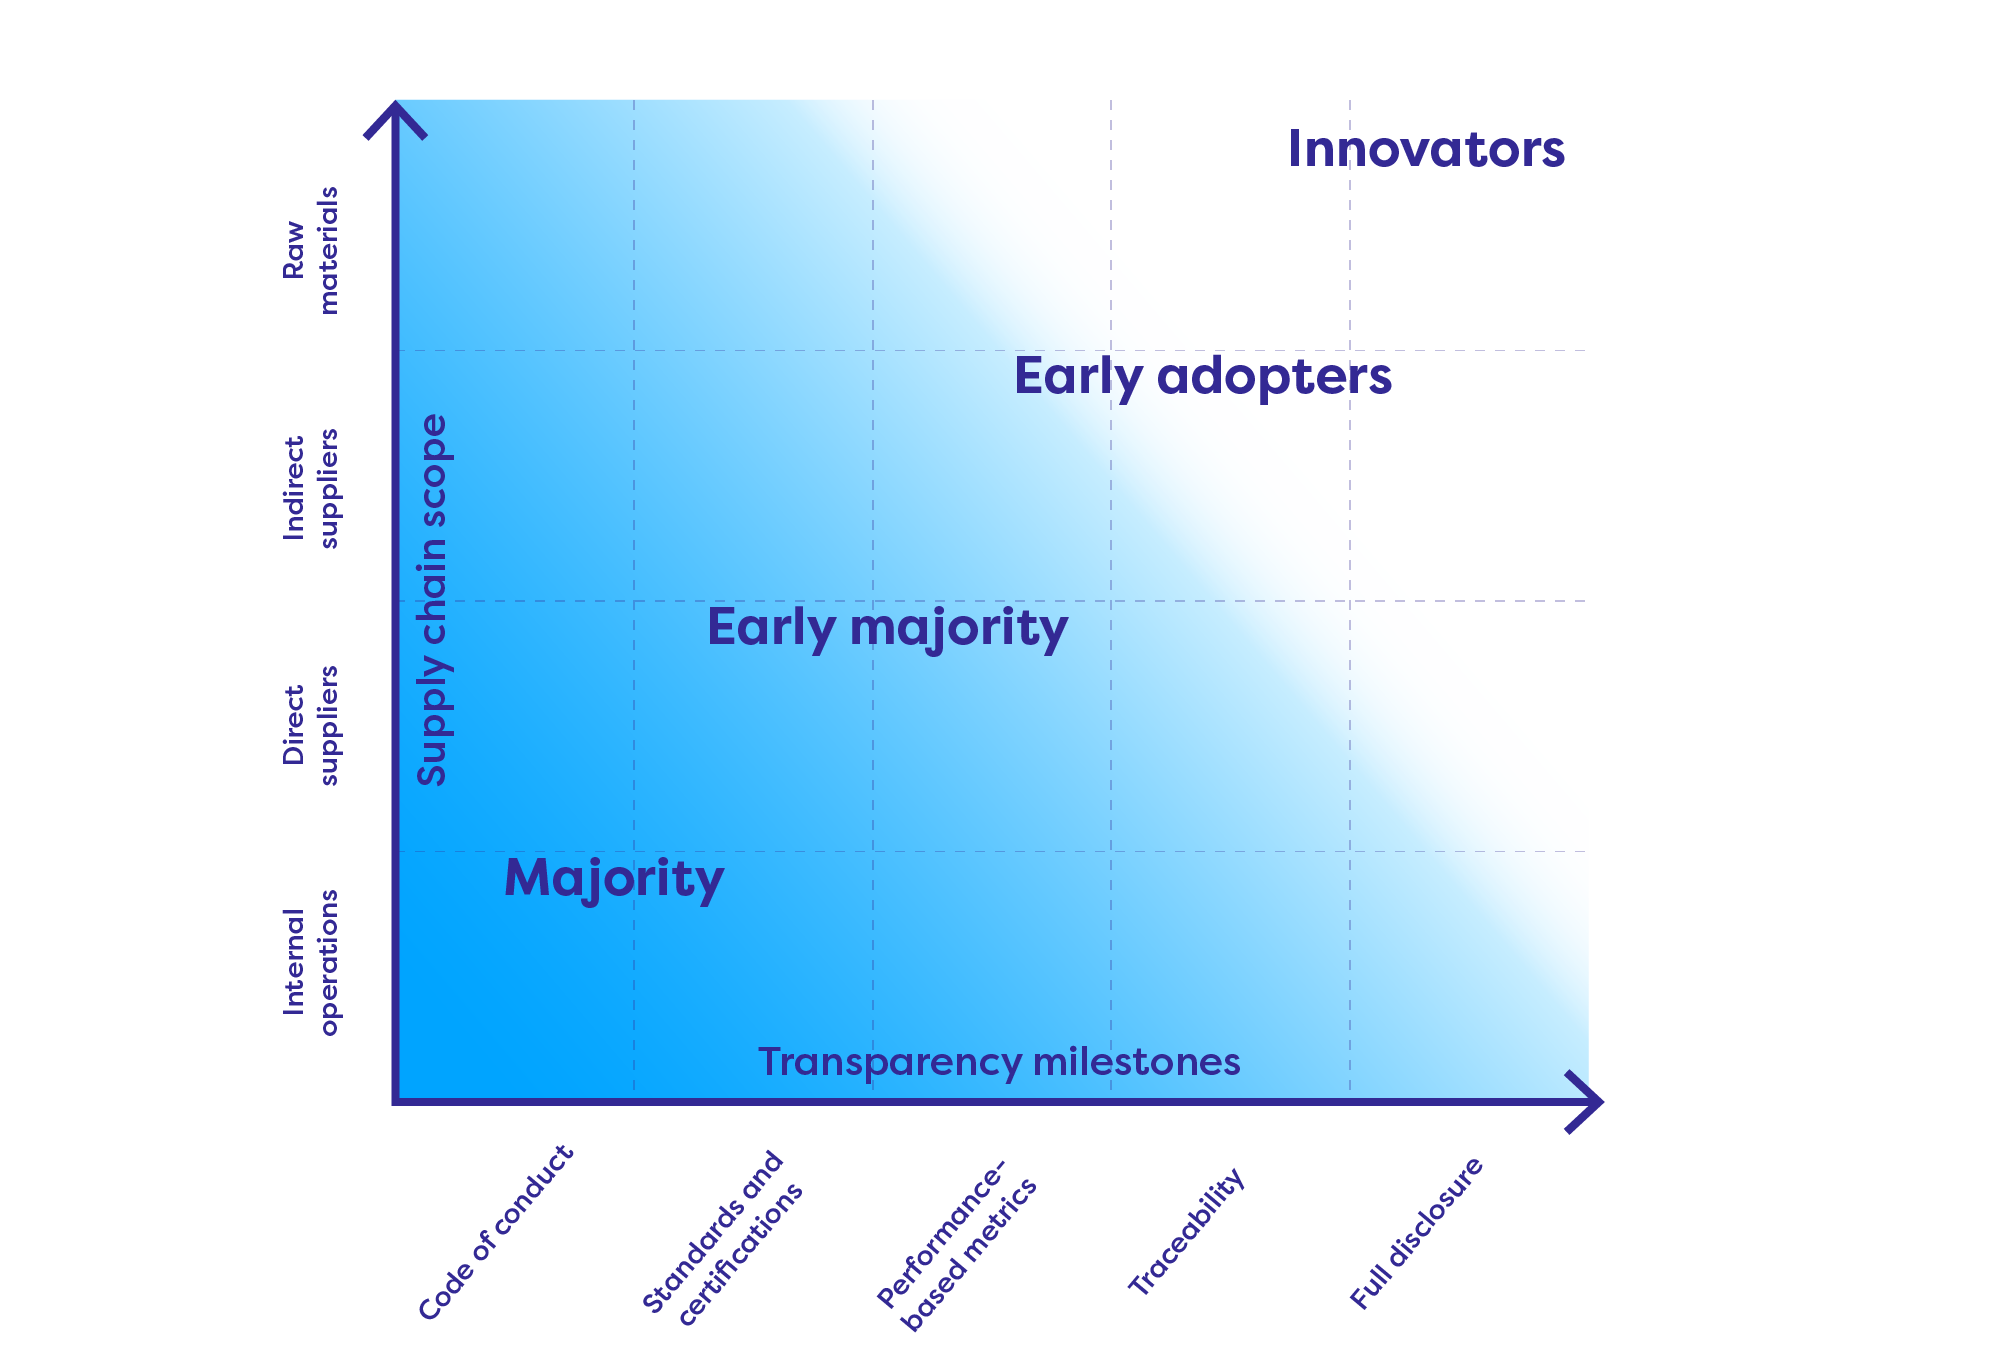 Supply-chain transparency can be measured along two dimensions: supply-chain scope and transparency milestones.